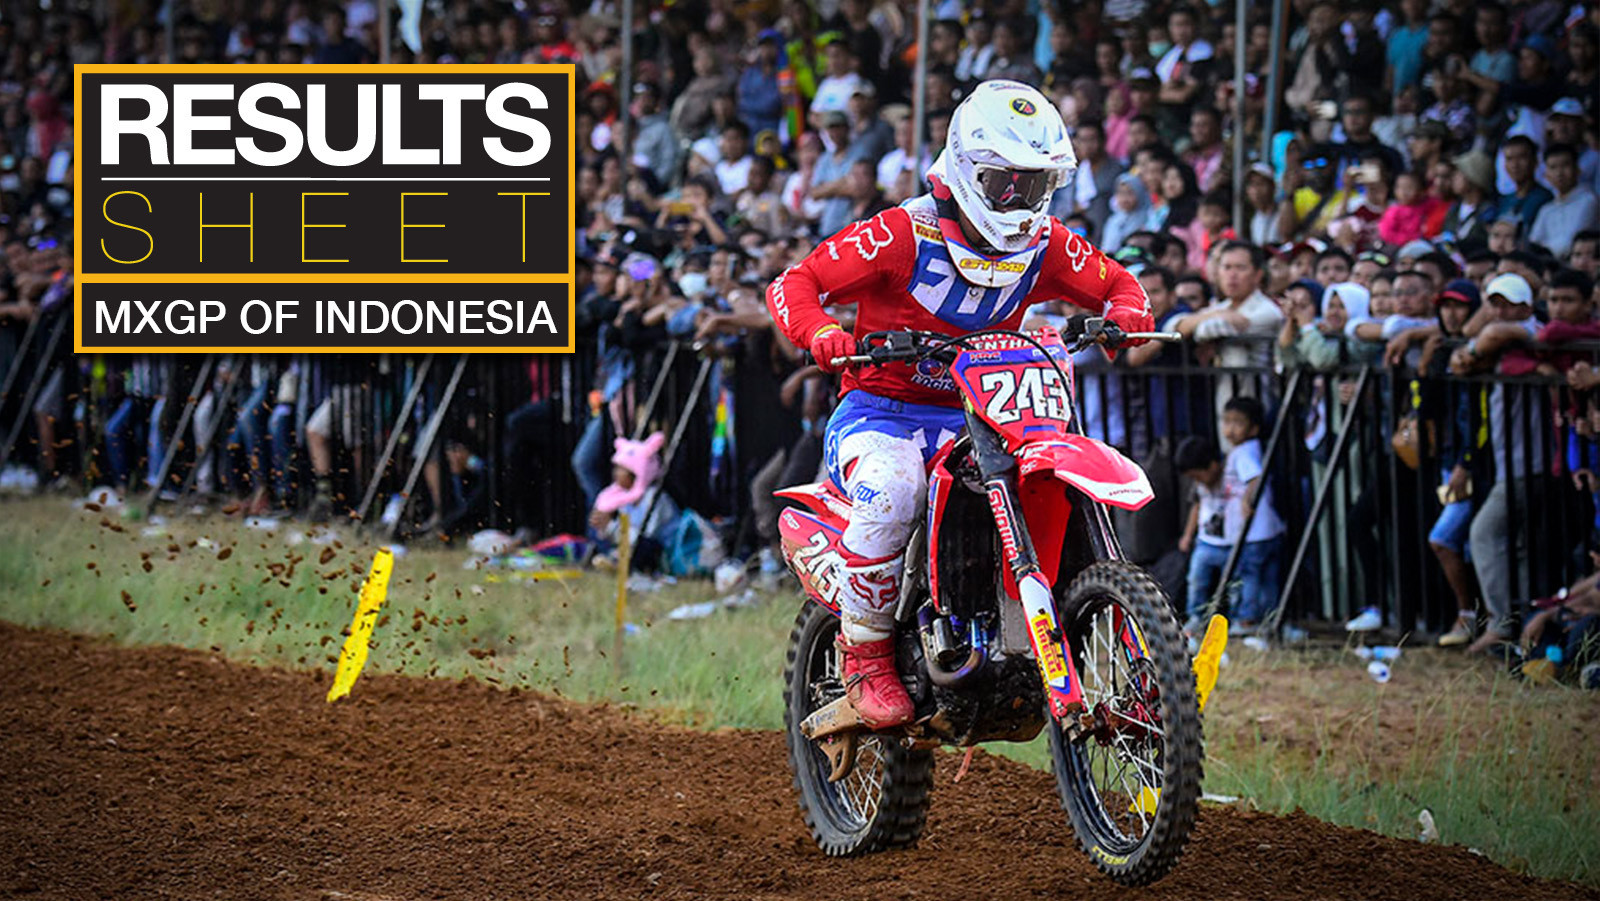 Results Sheet: 2019 MXGP of Indonesia